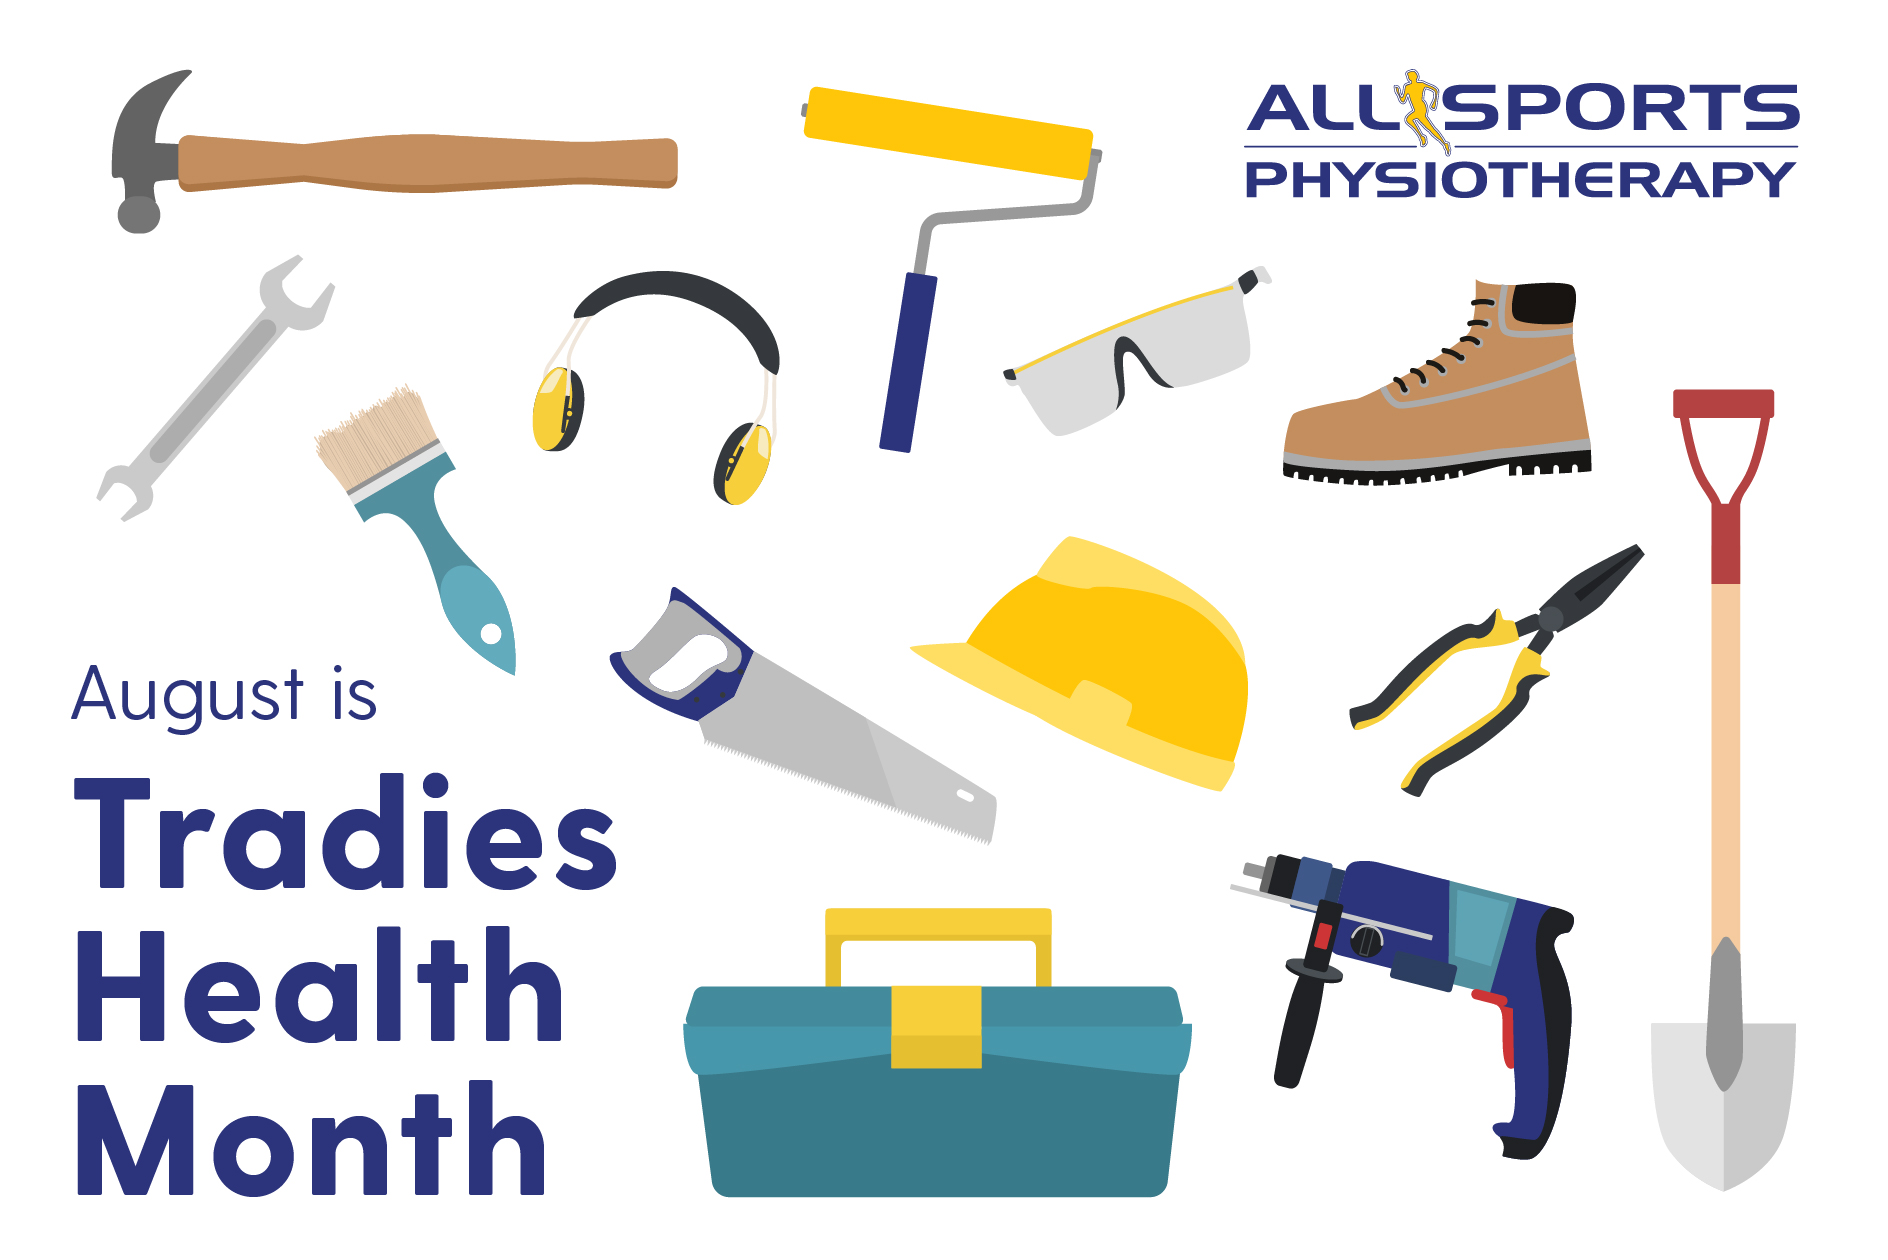 Tradies Health Month - Looking after your greatest asset